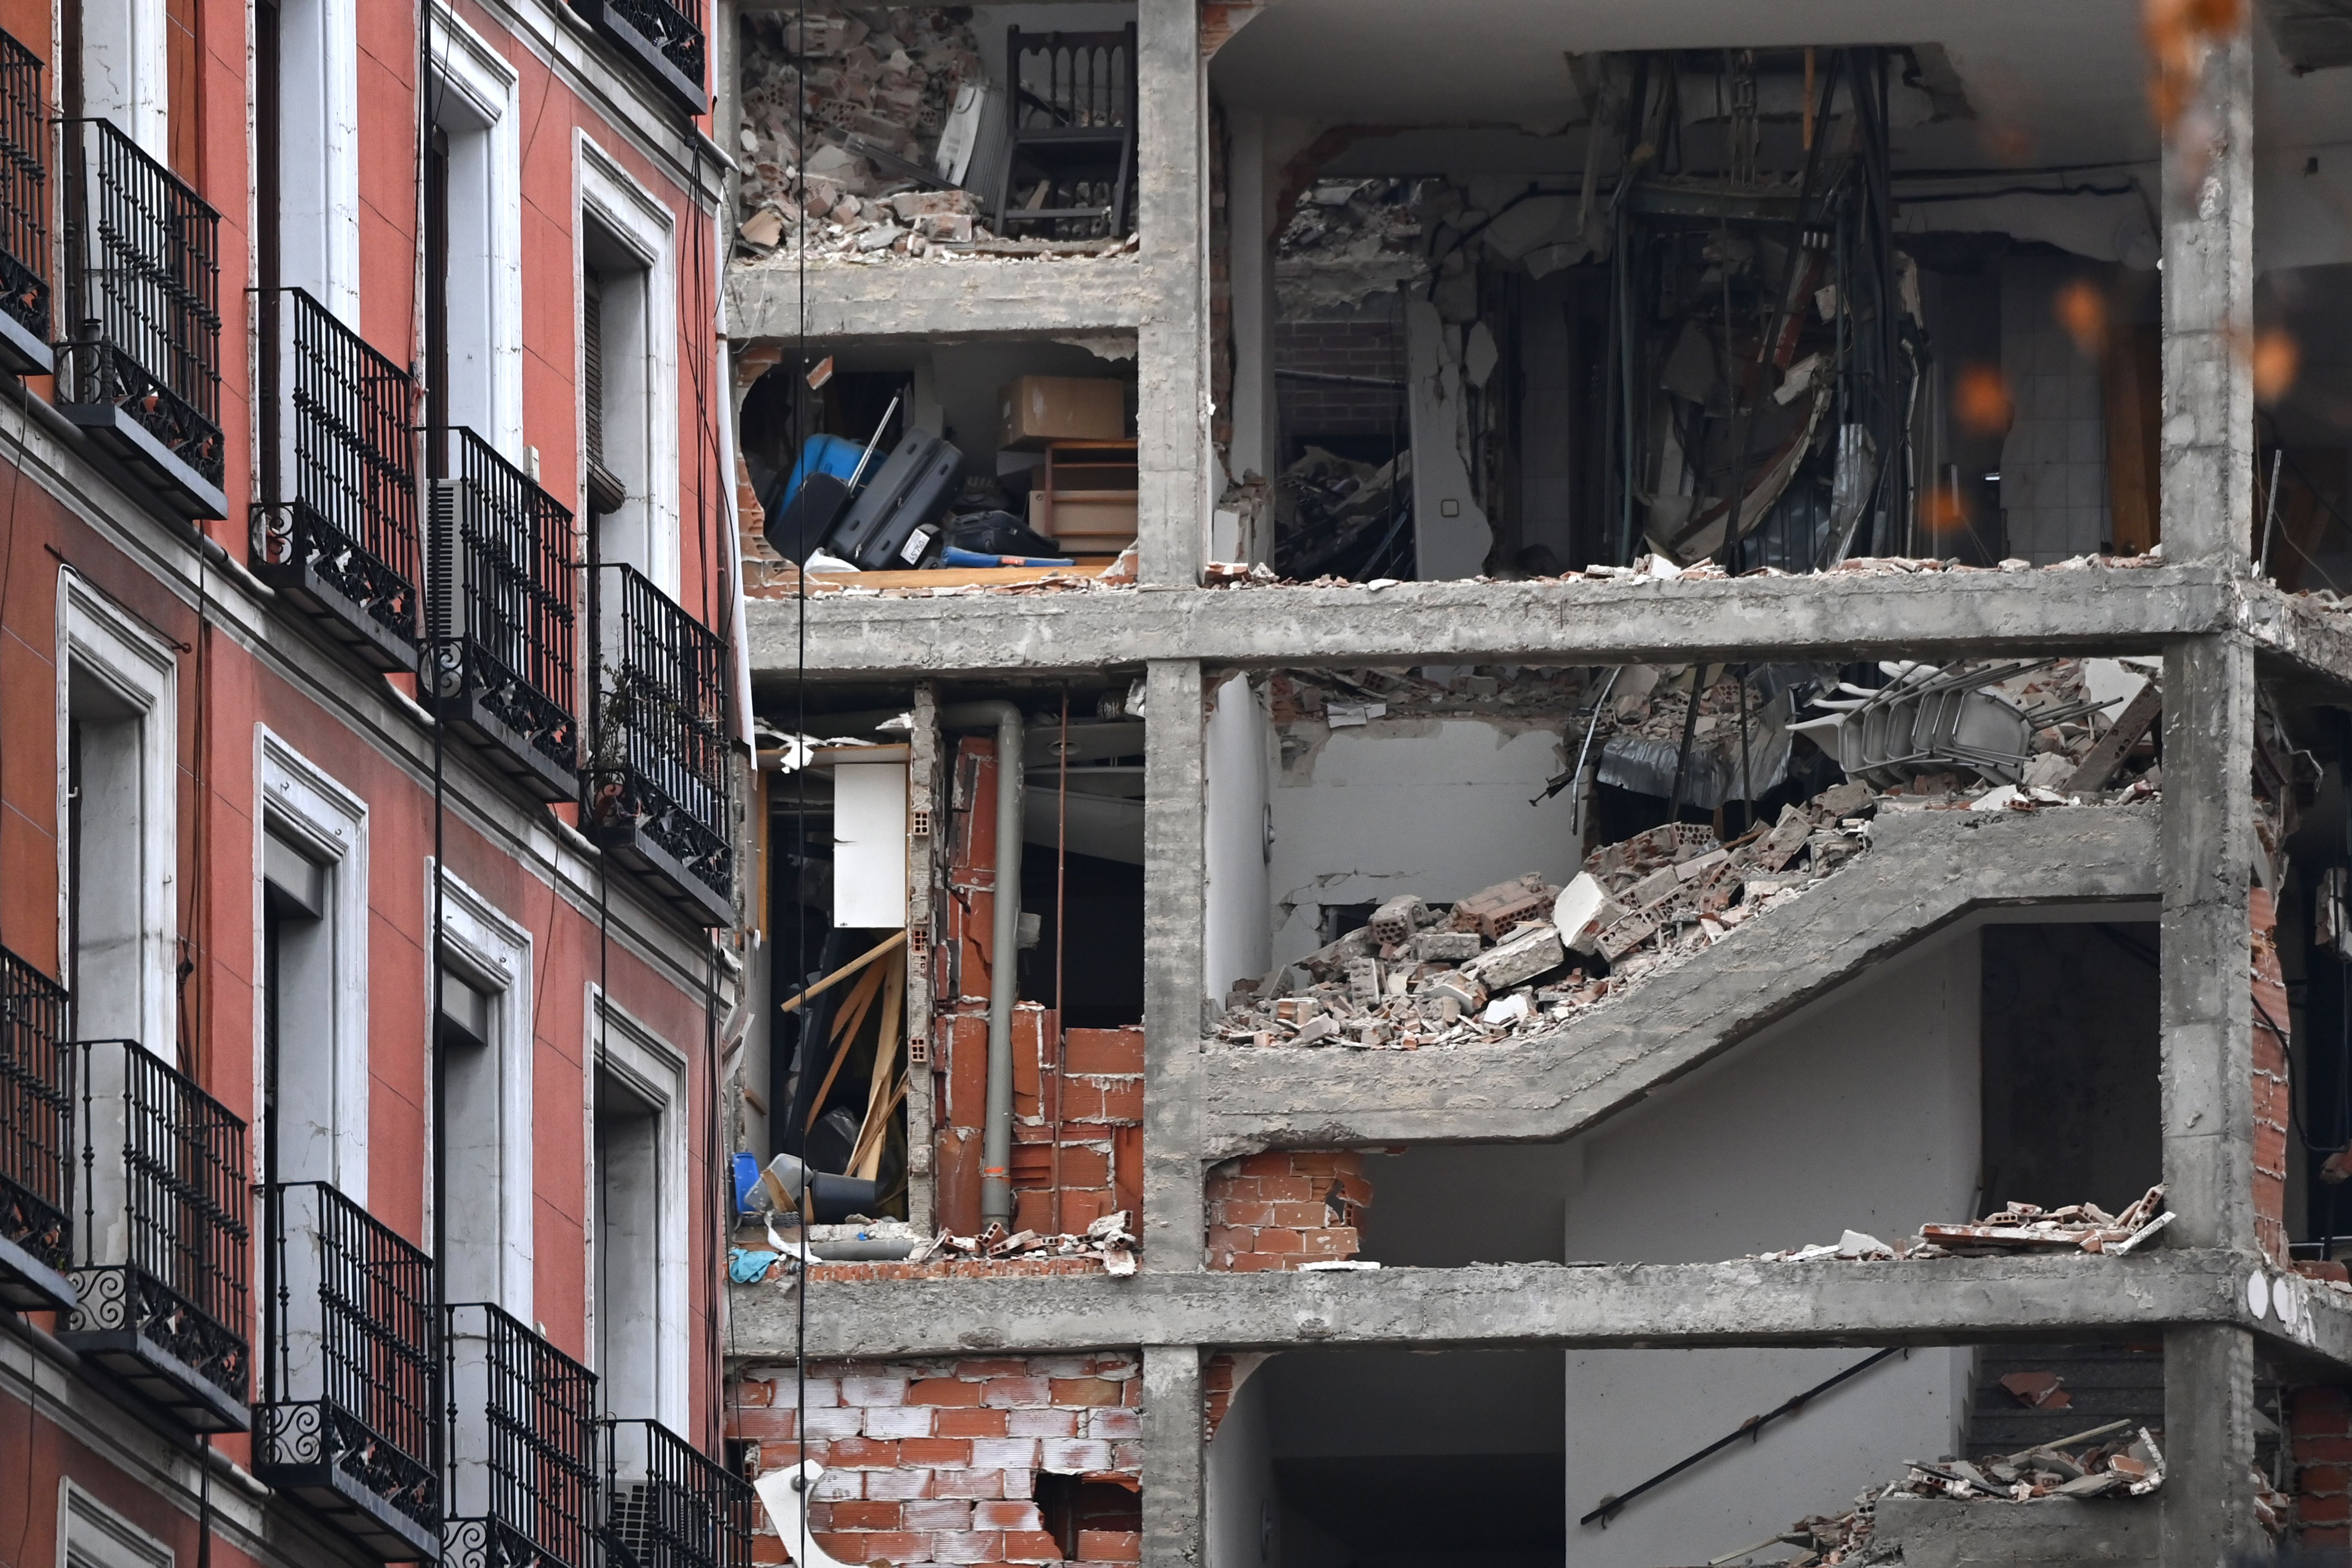 A damaged building is pictured in Madrid on January 20, 2021 after a strong explosion rocked the building. - The cause of the blast was not immediately clear. (Photo by GABRIEL BOUYS / AFP) (Photo by GABRIEL BOUYS/AFP via Getty Images)